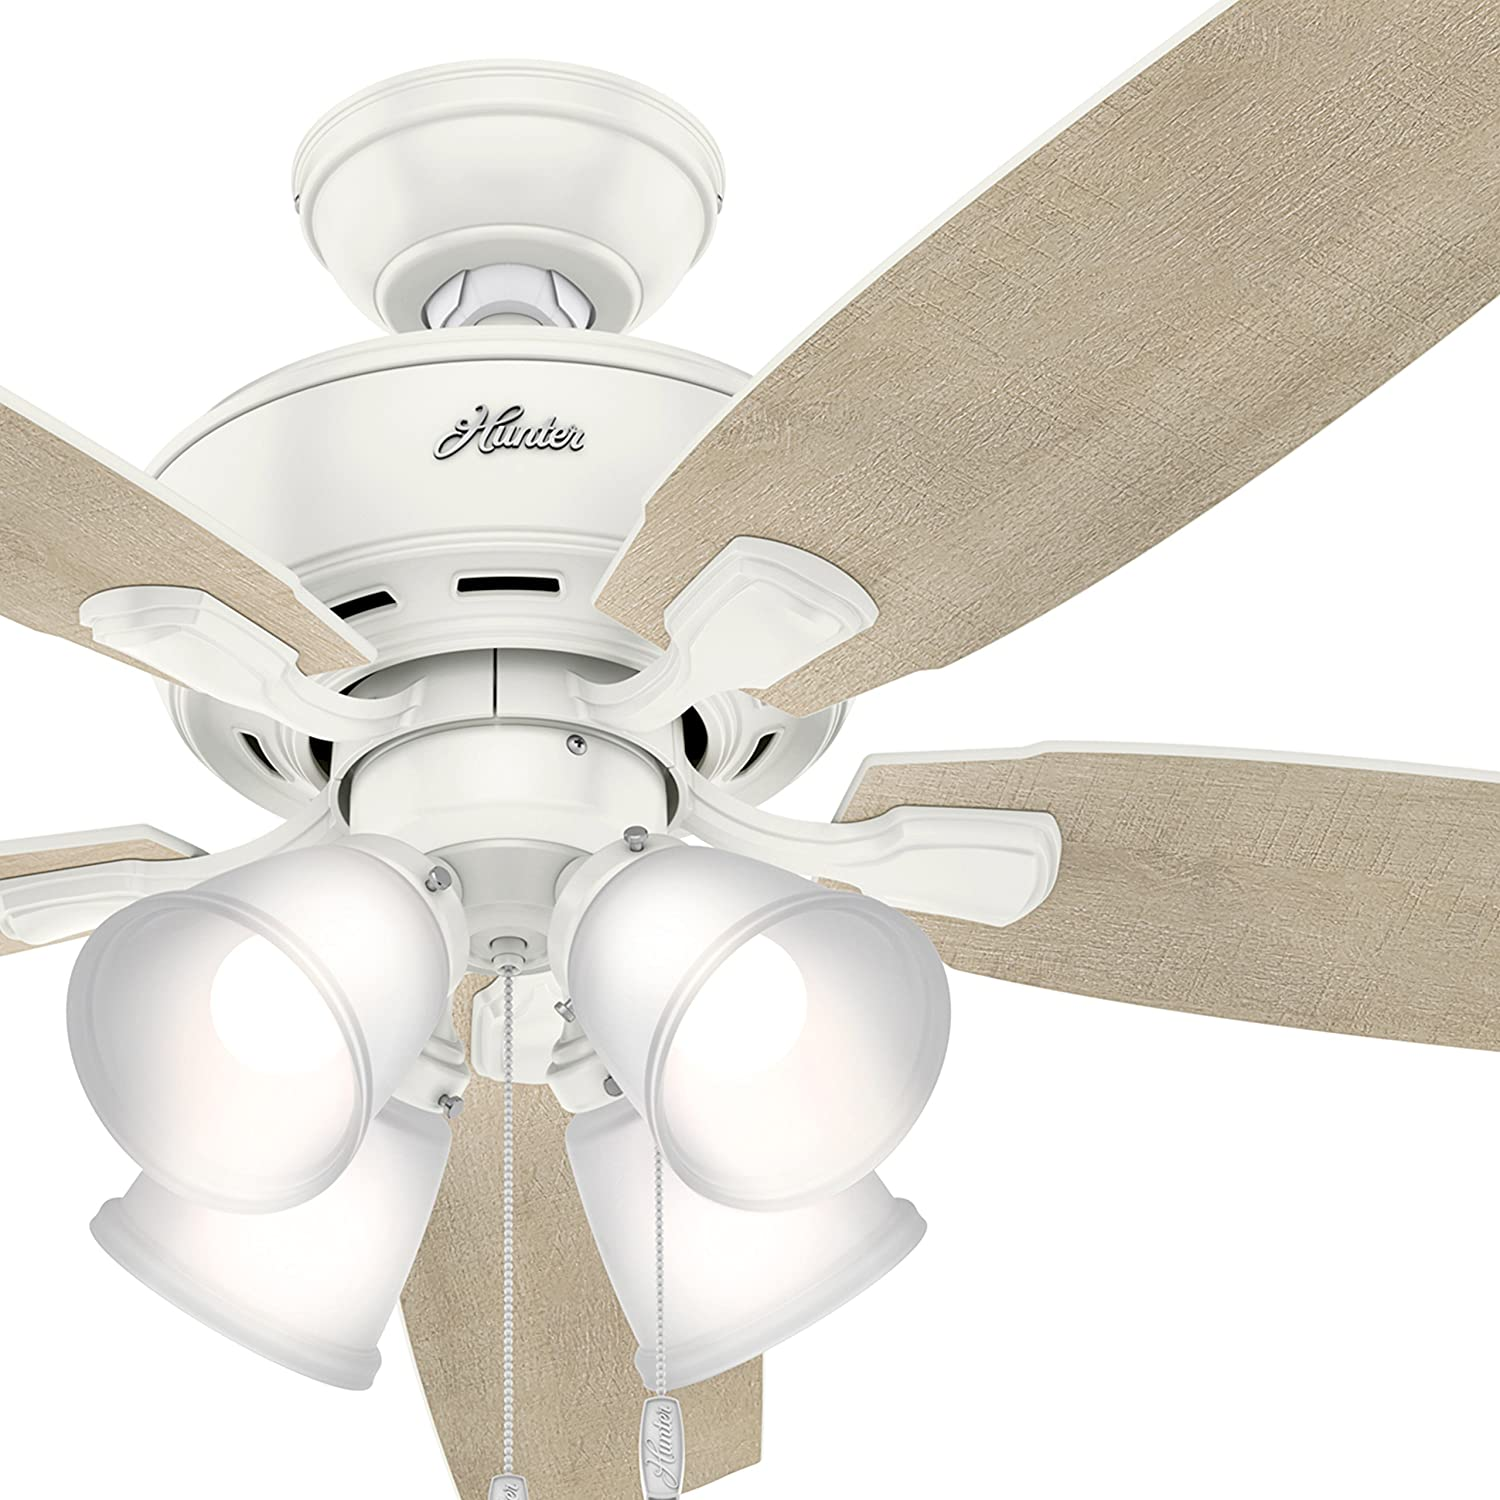 Hunter Fan - Ventilador de techo con 4 luces LED regulables, color blanco fresco (reacondicionado certificado): Amazon.es: Bricolaje y herramientas